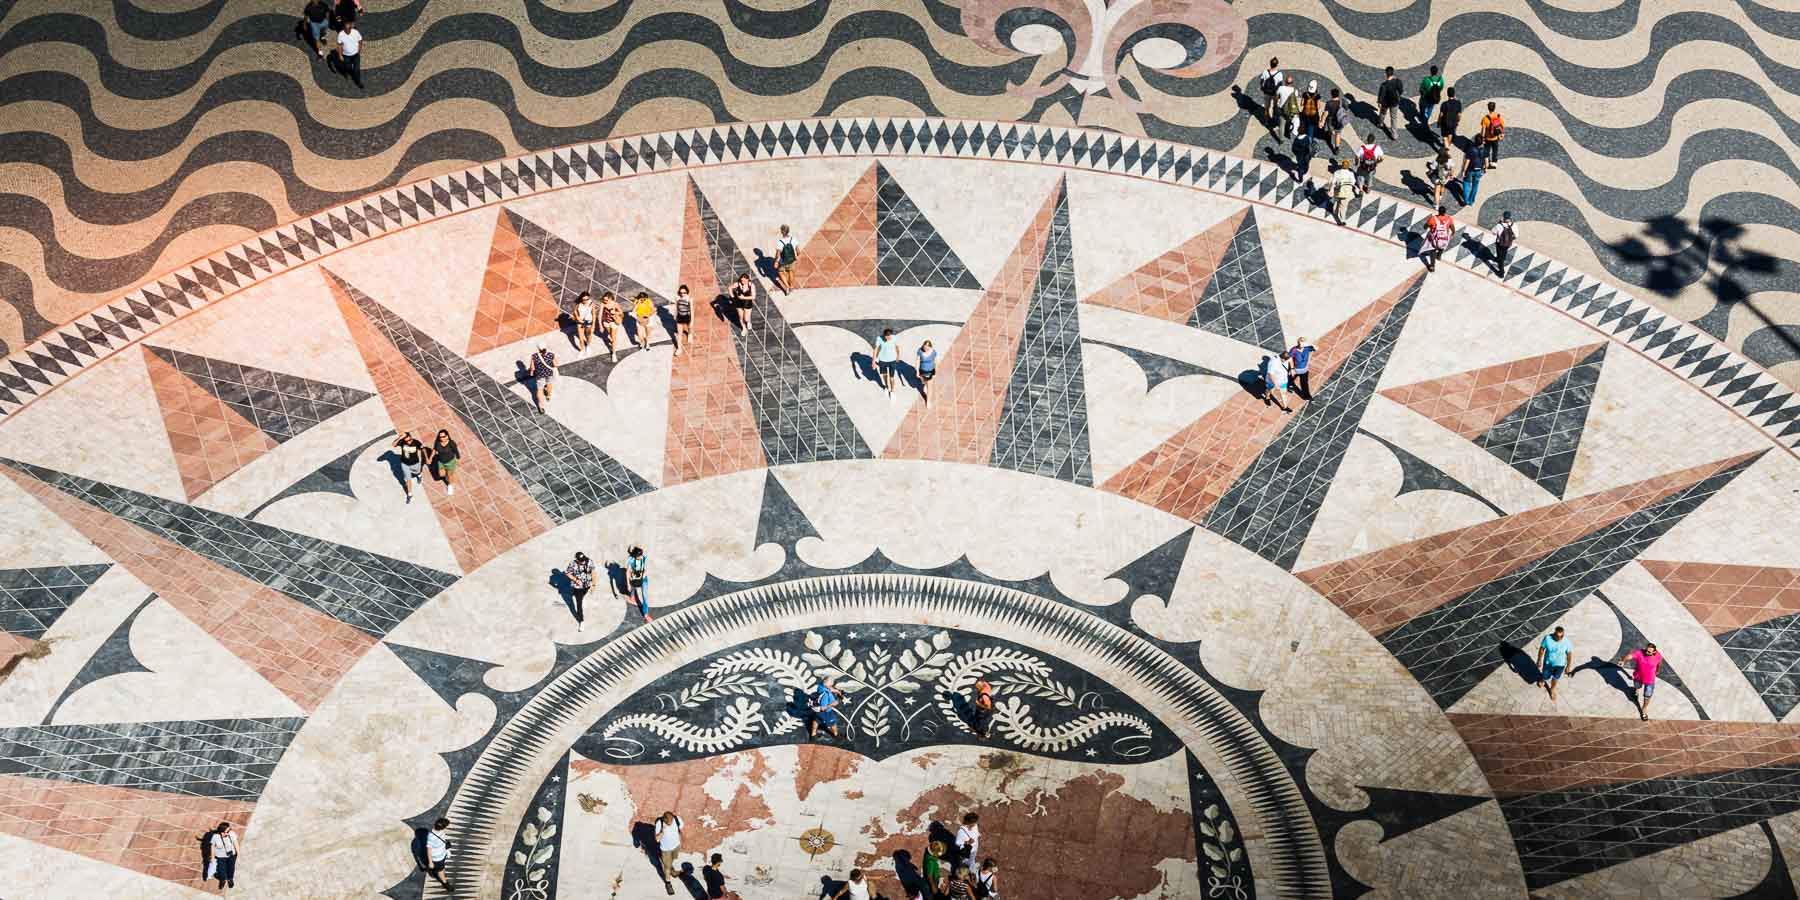 View of mosaics from the top of the Belem tower.